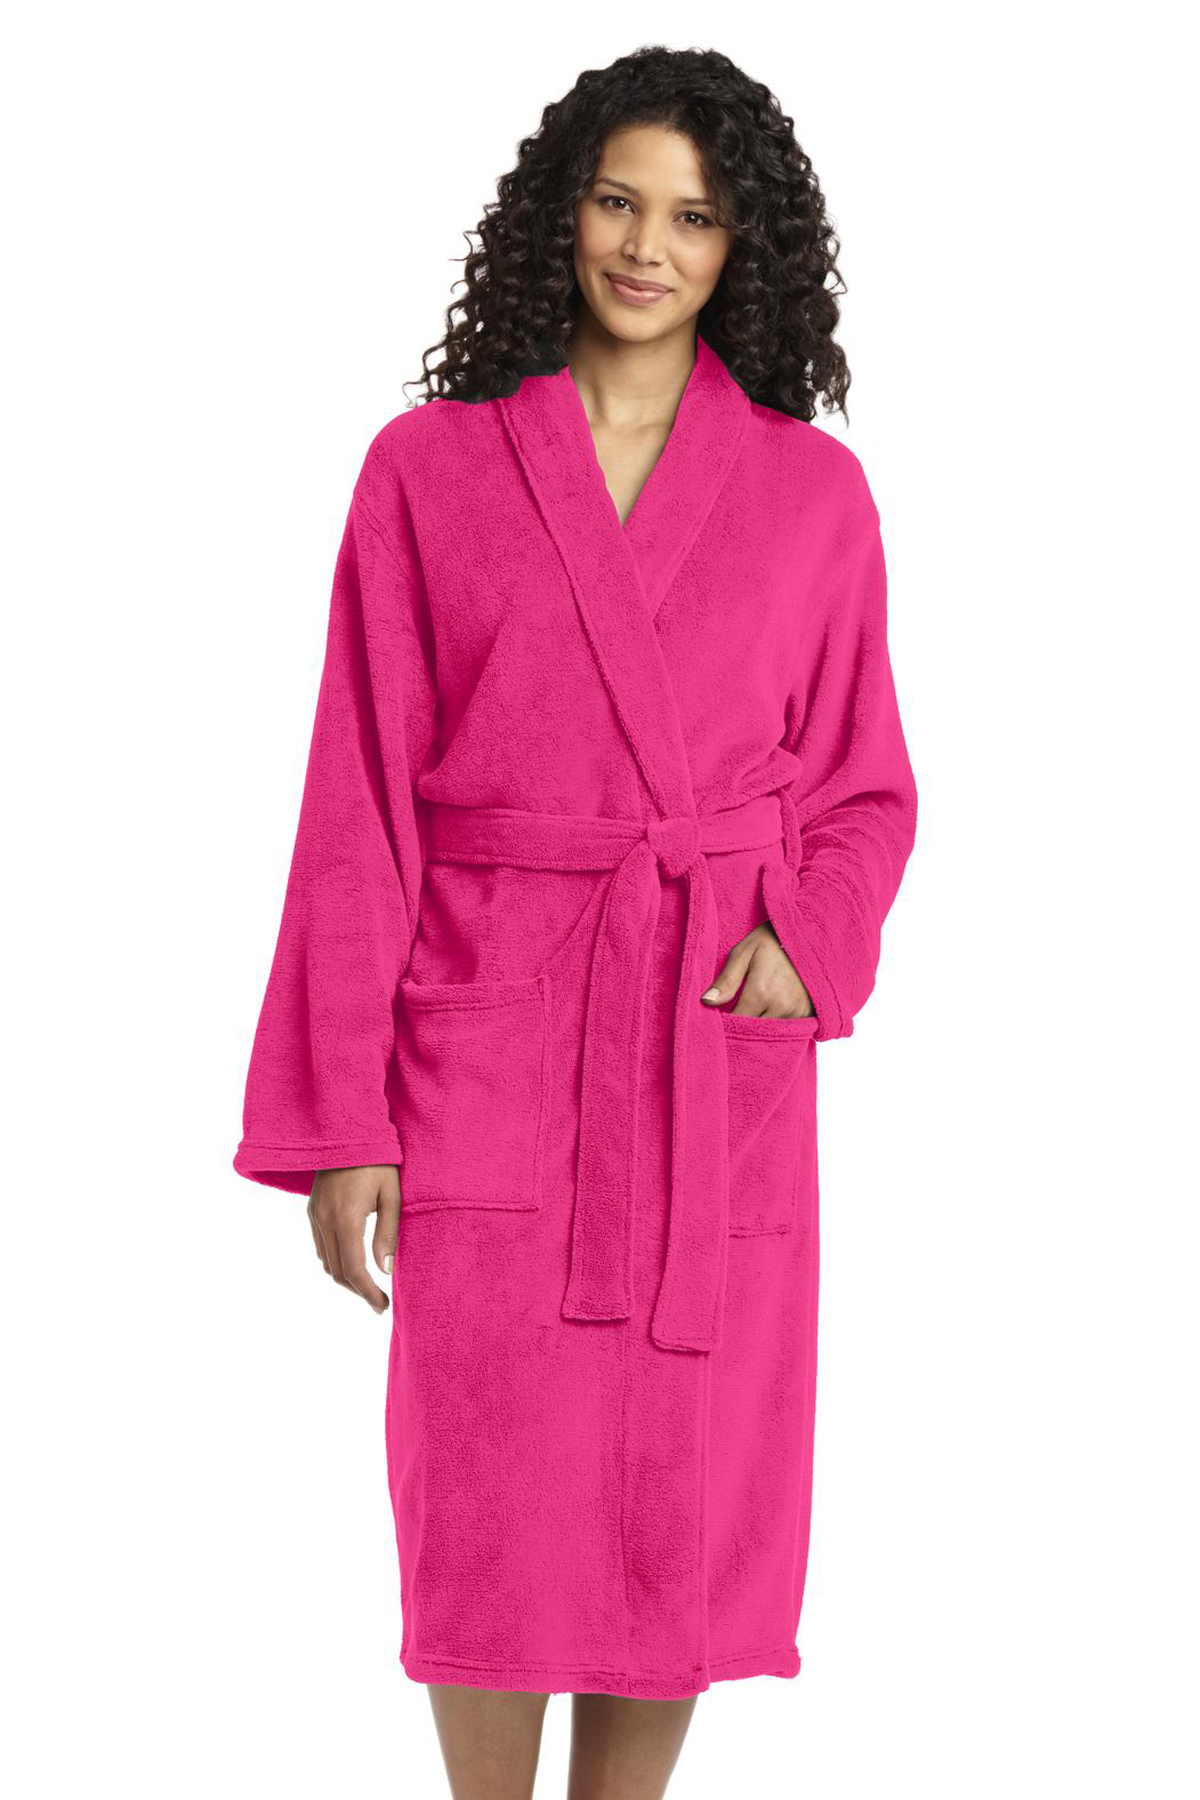 Accessories-Robes-Towels-3